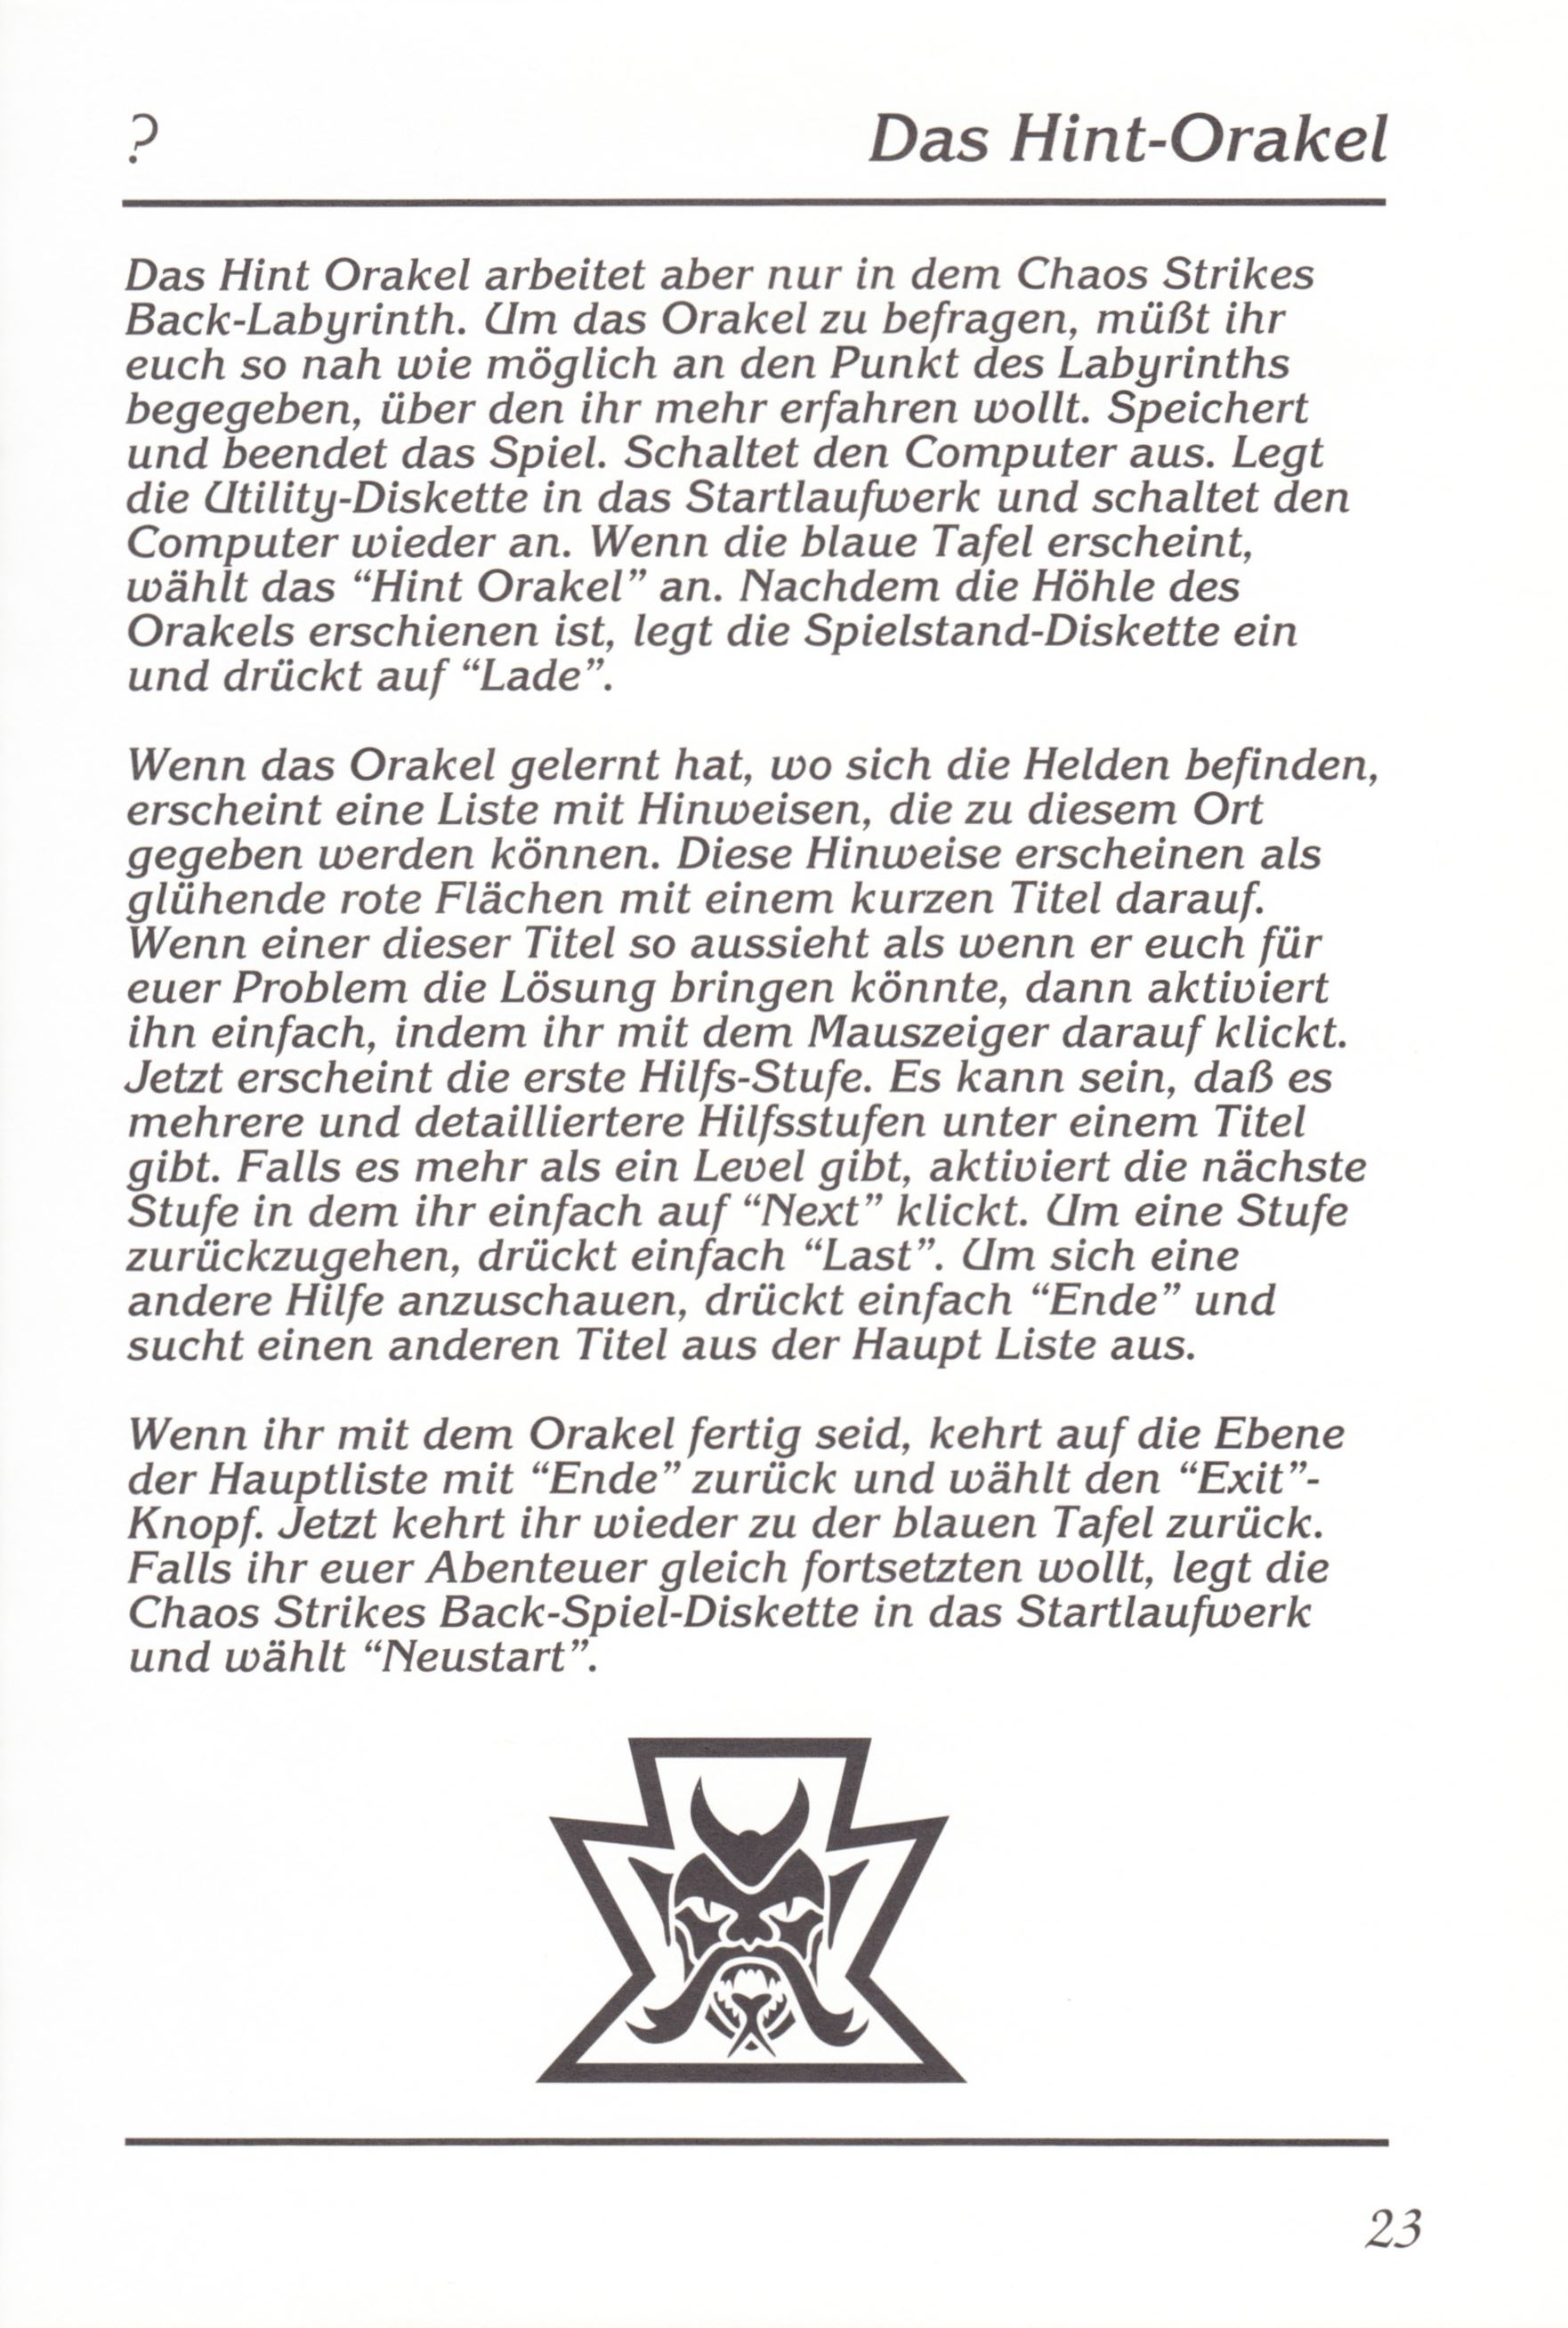 Game - Chaos Strikes Back - DE - Amiga - Manual - Page 025 - Scan